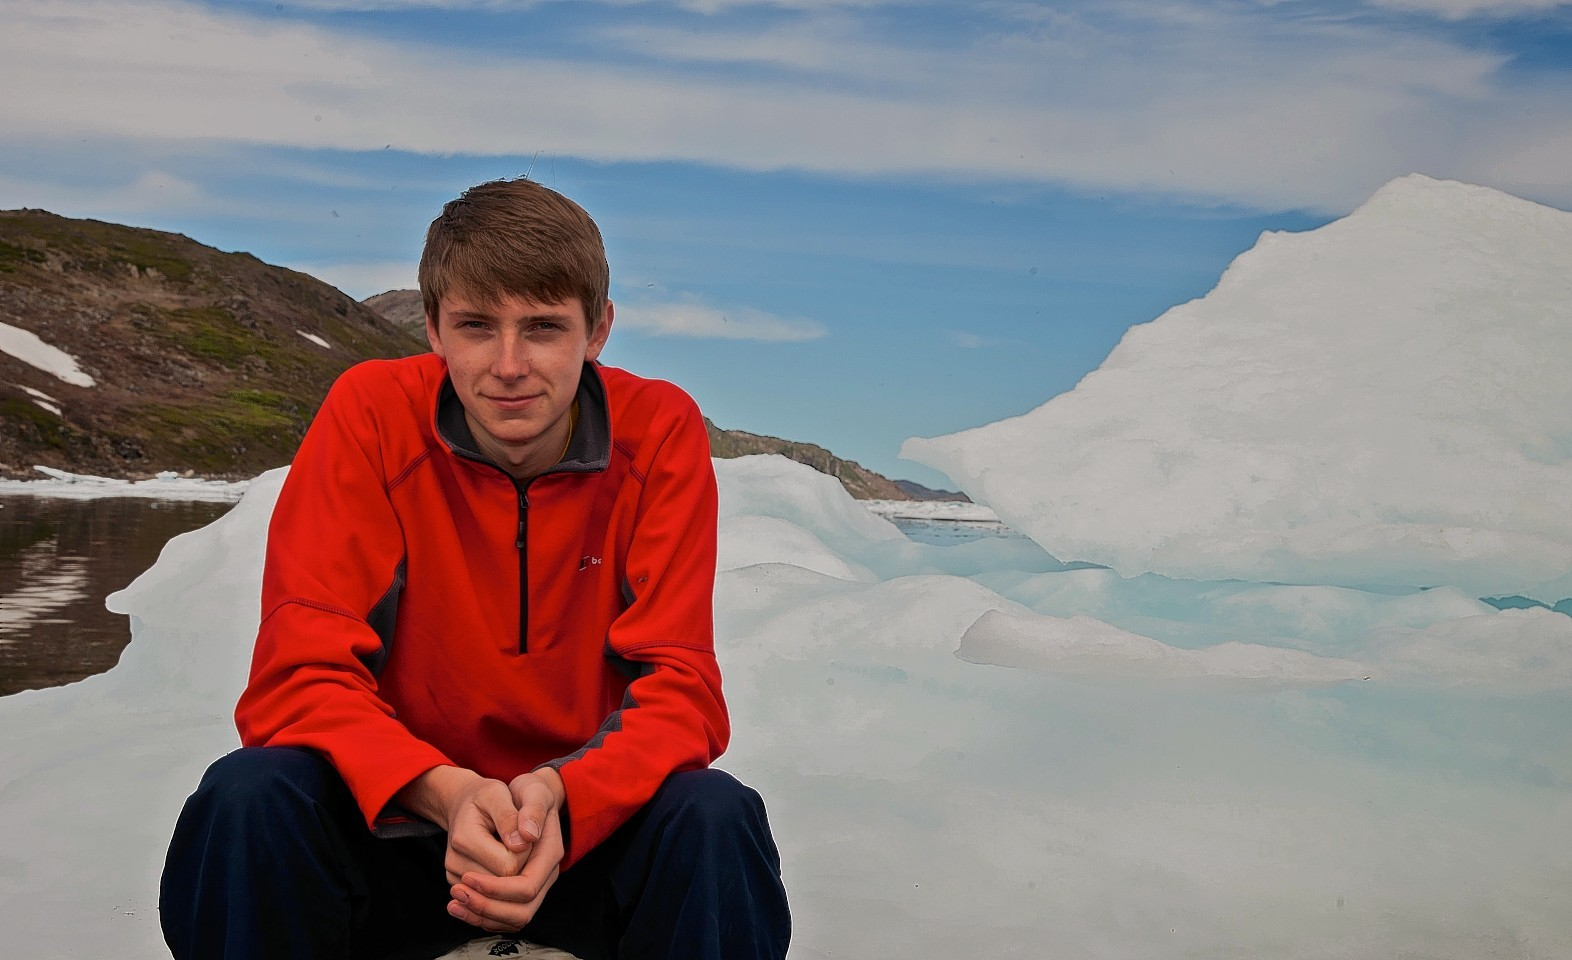 Alistair Walker's trip to the Arctic